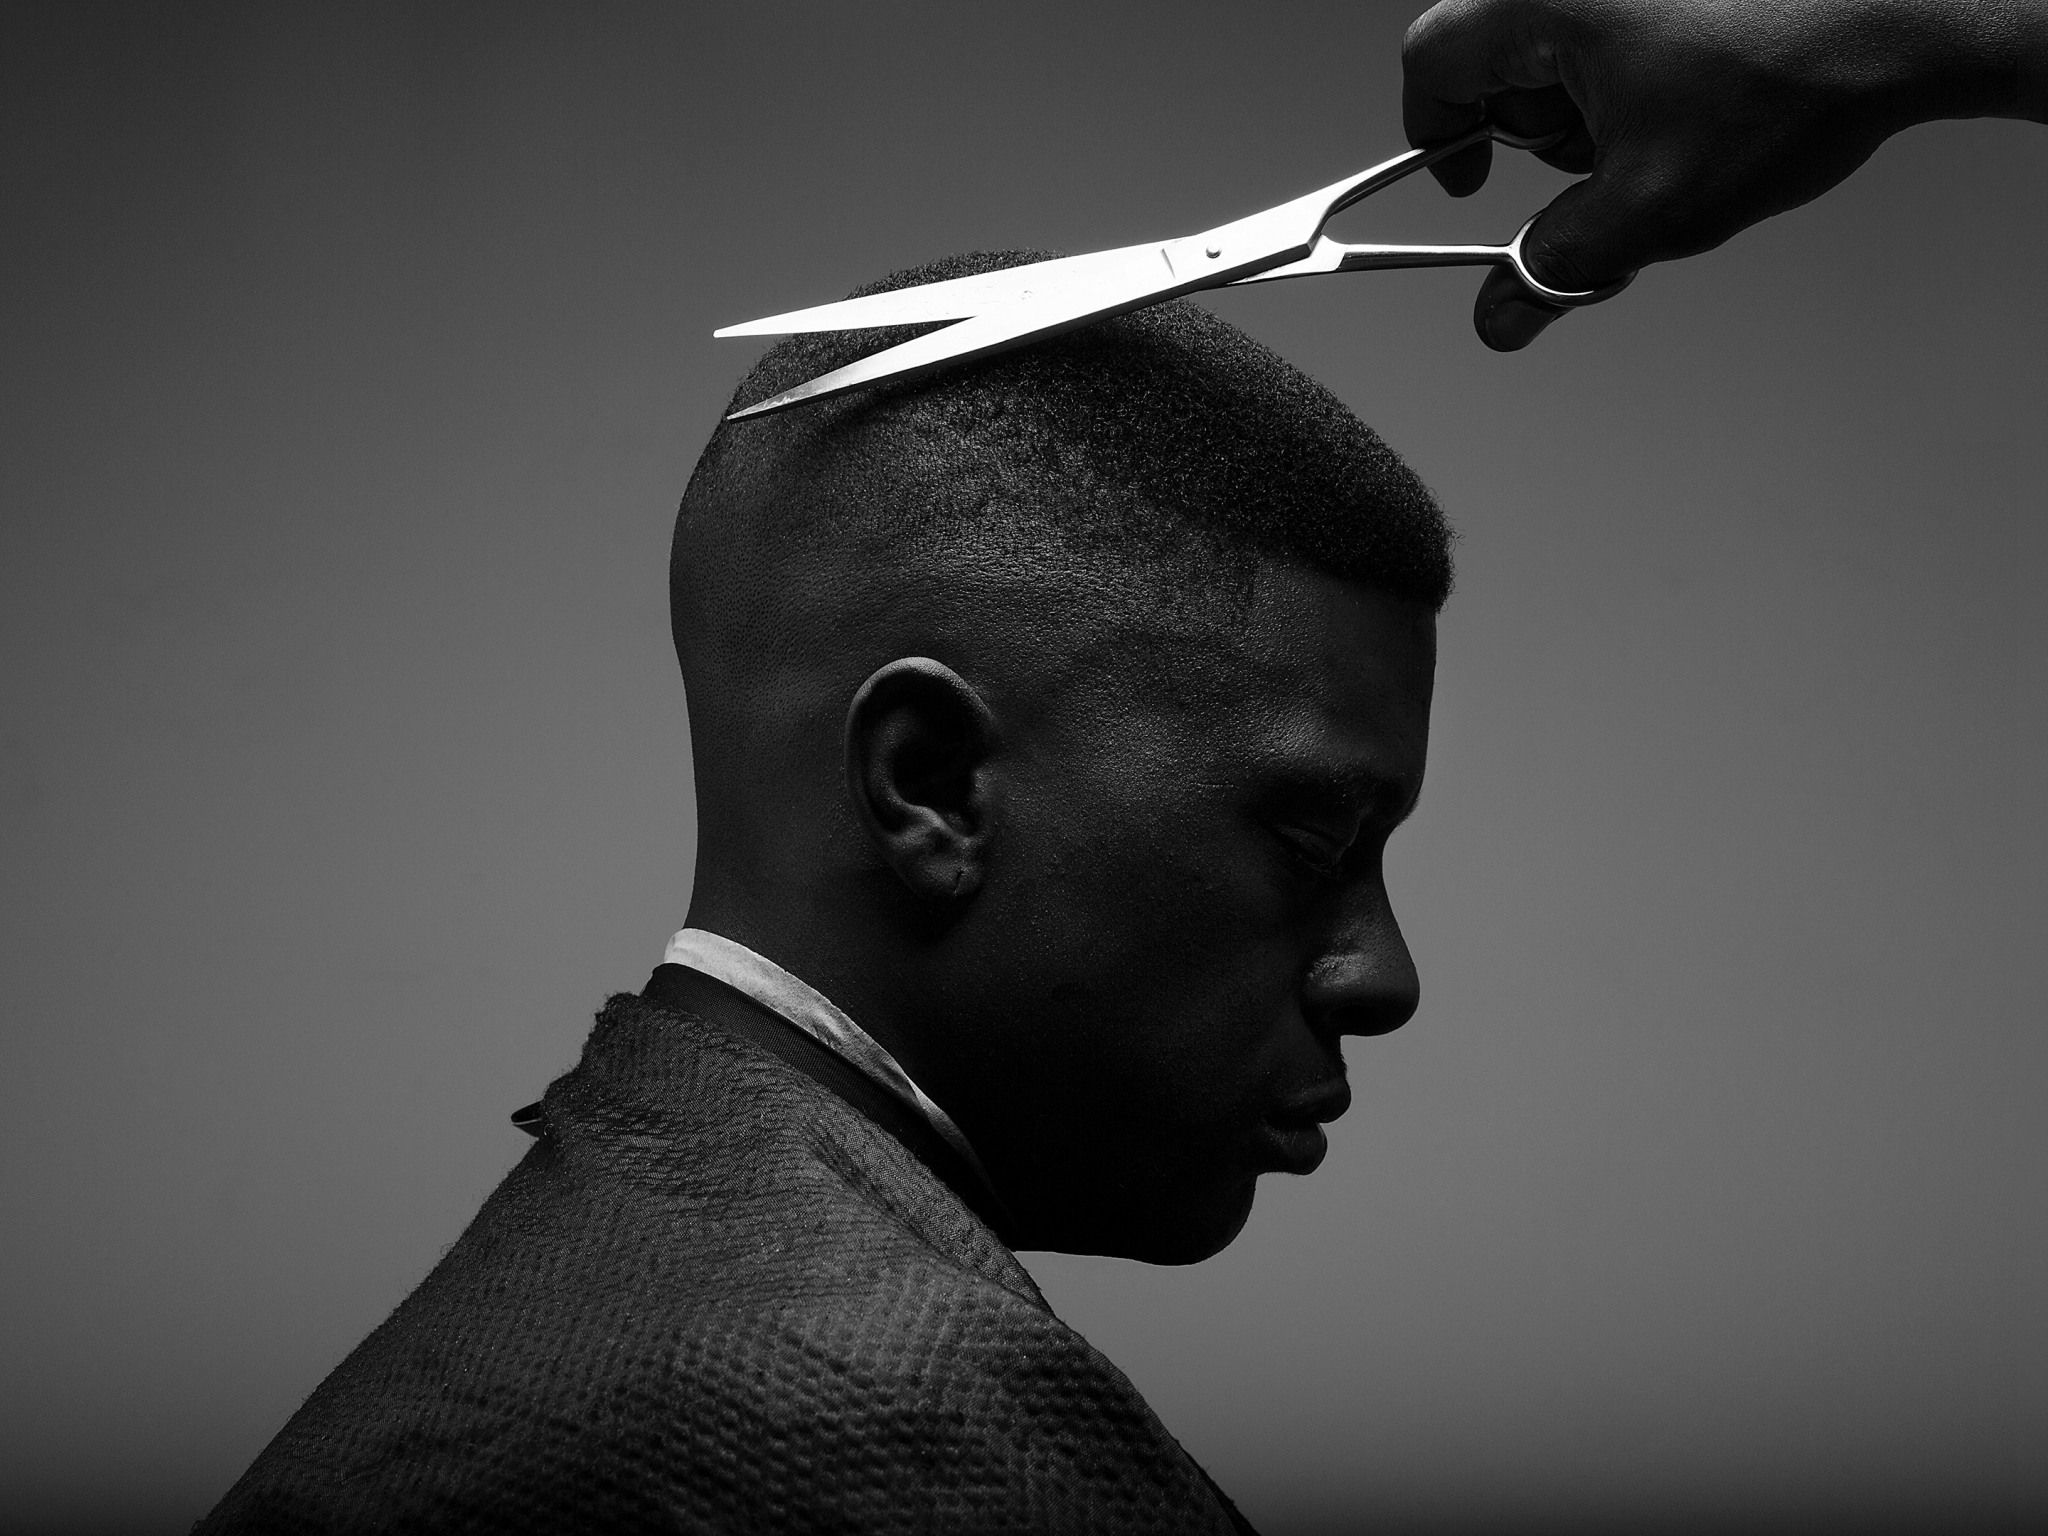 Scissors cutting a man's hair.